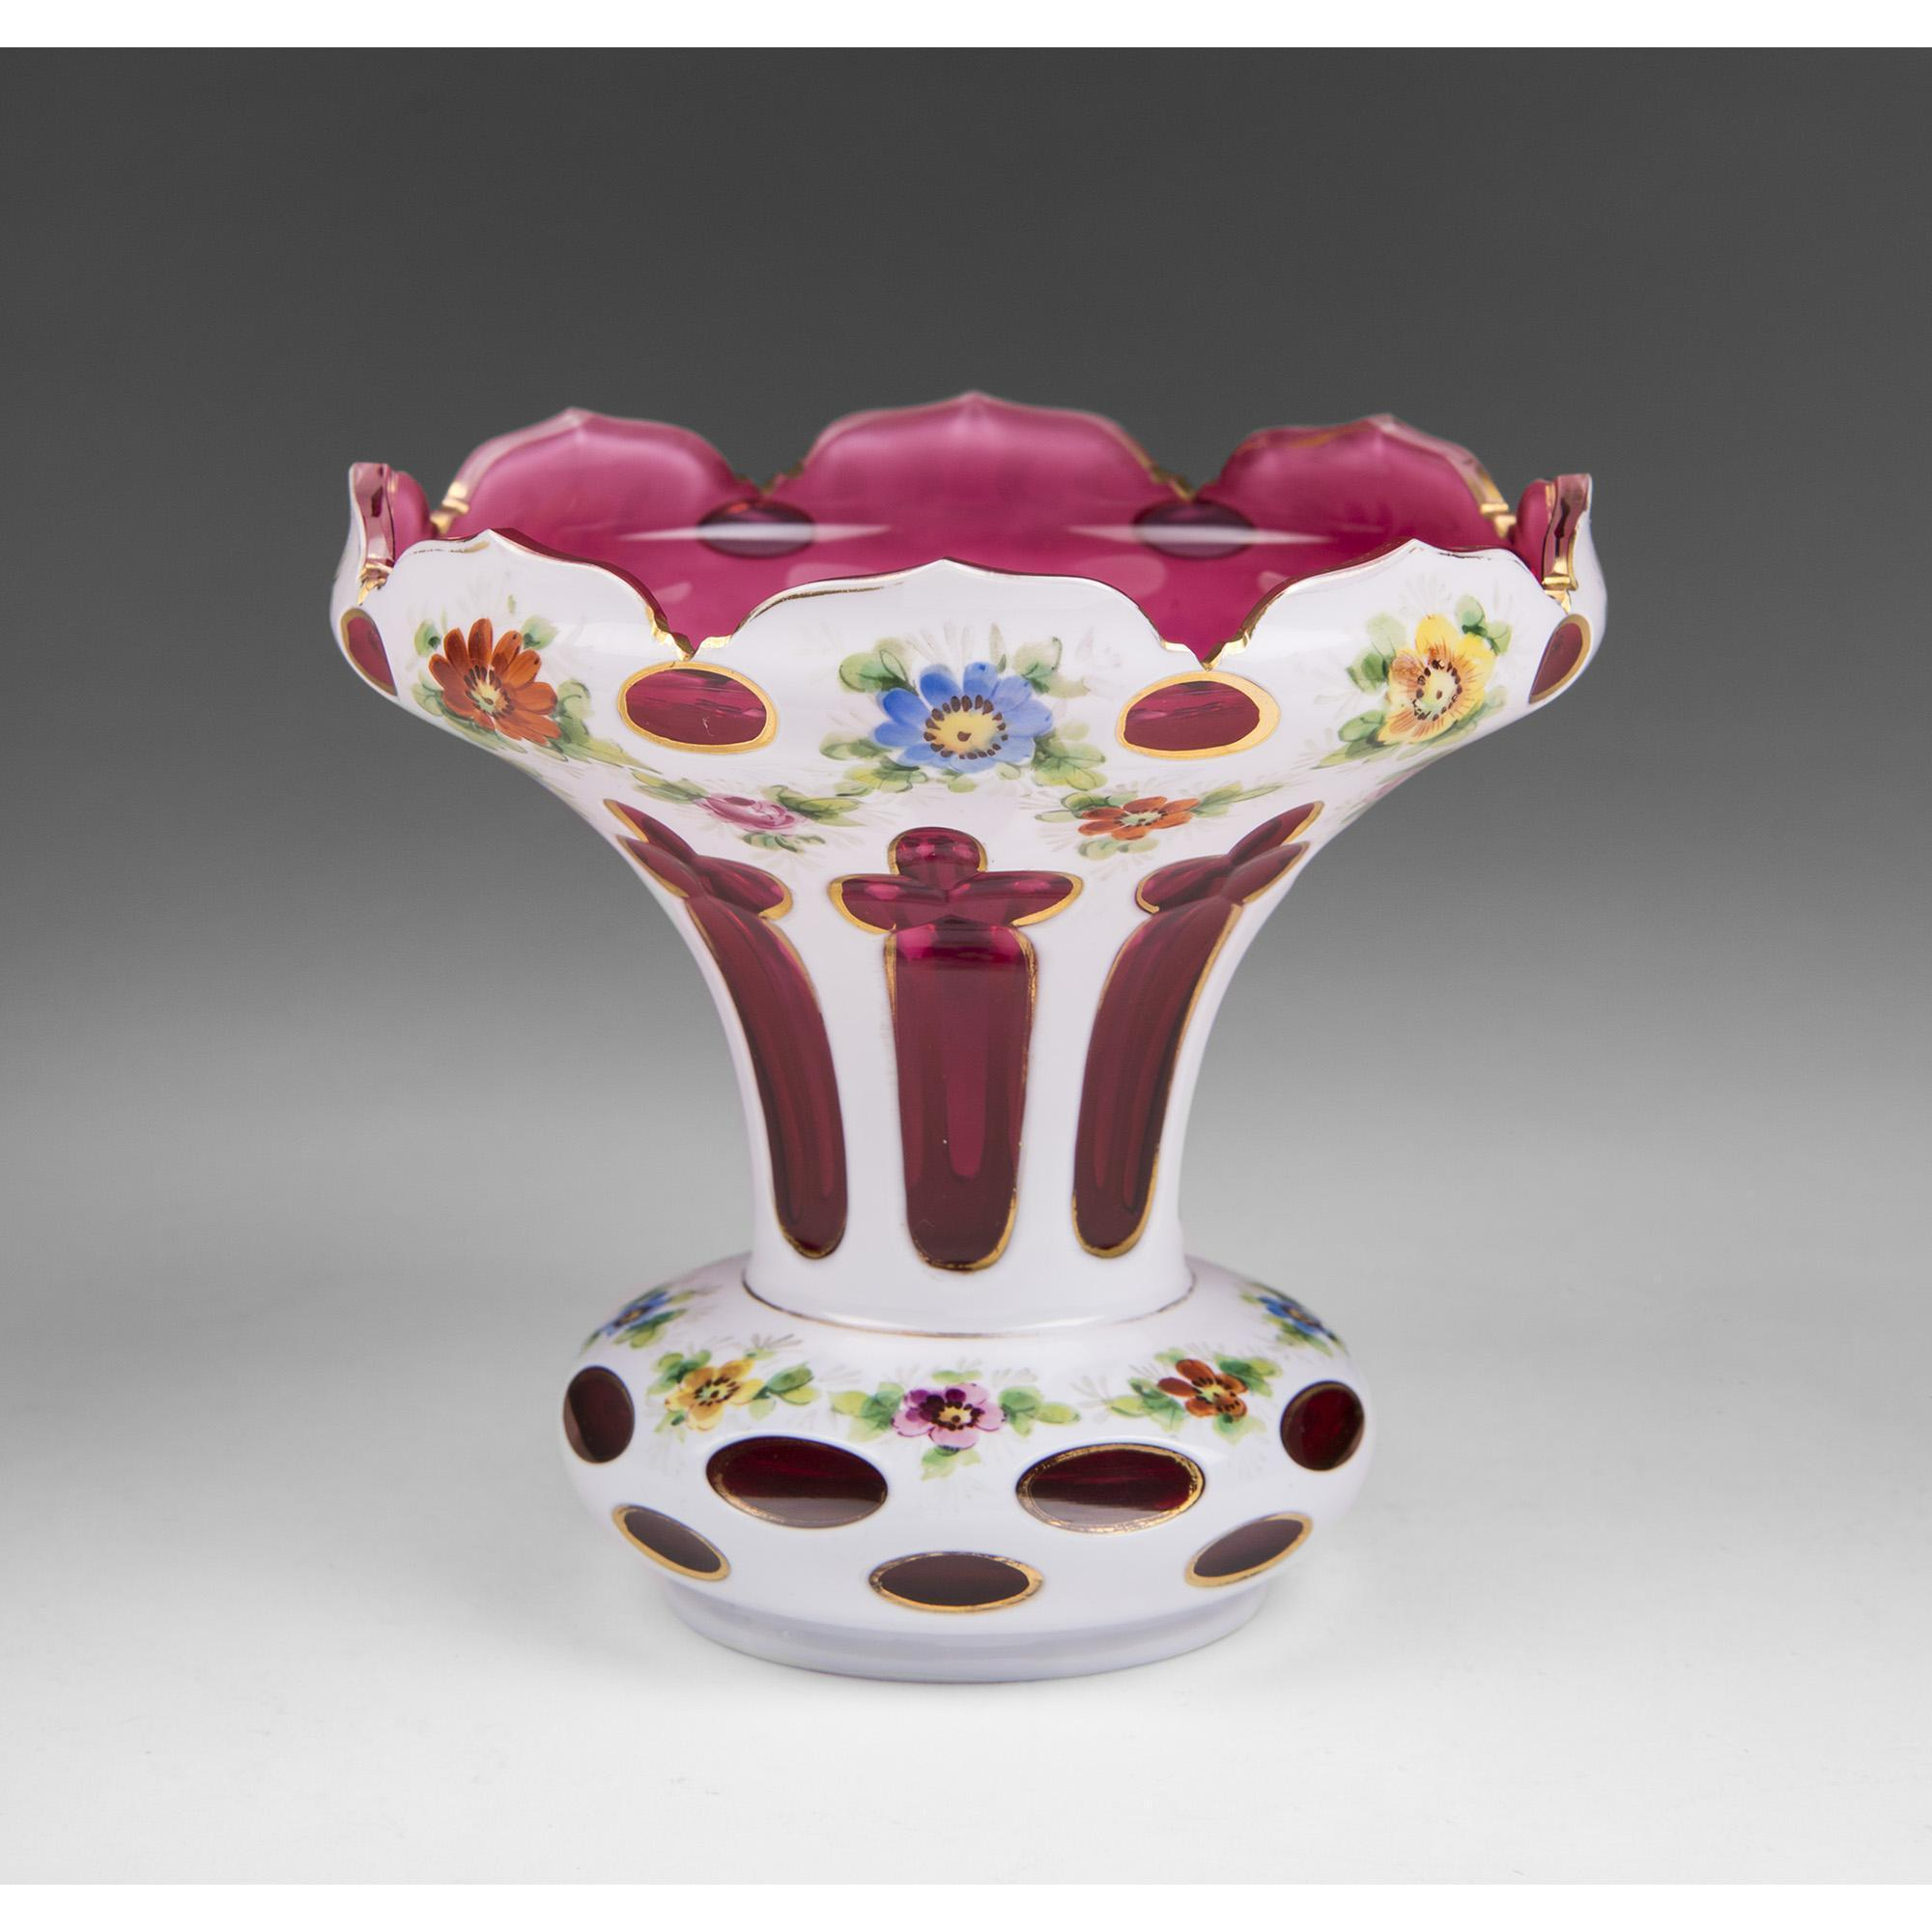 Bohemian Cut Opaline Overlay To Cranberry Glass Vase from ... Opaline Ruffled Glass Pink Vase